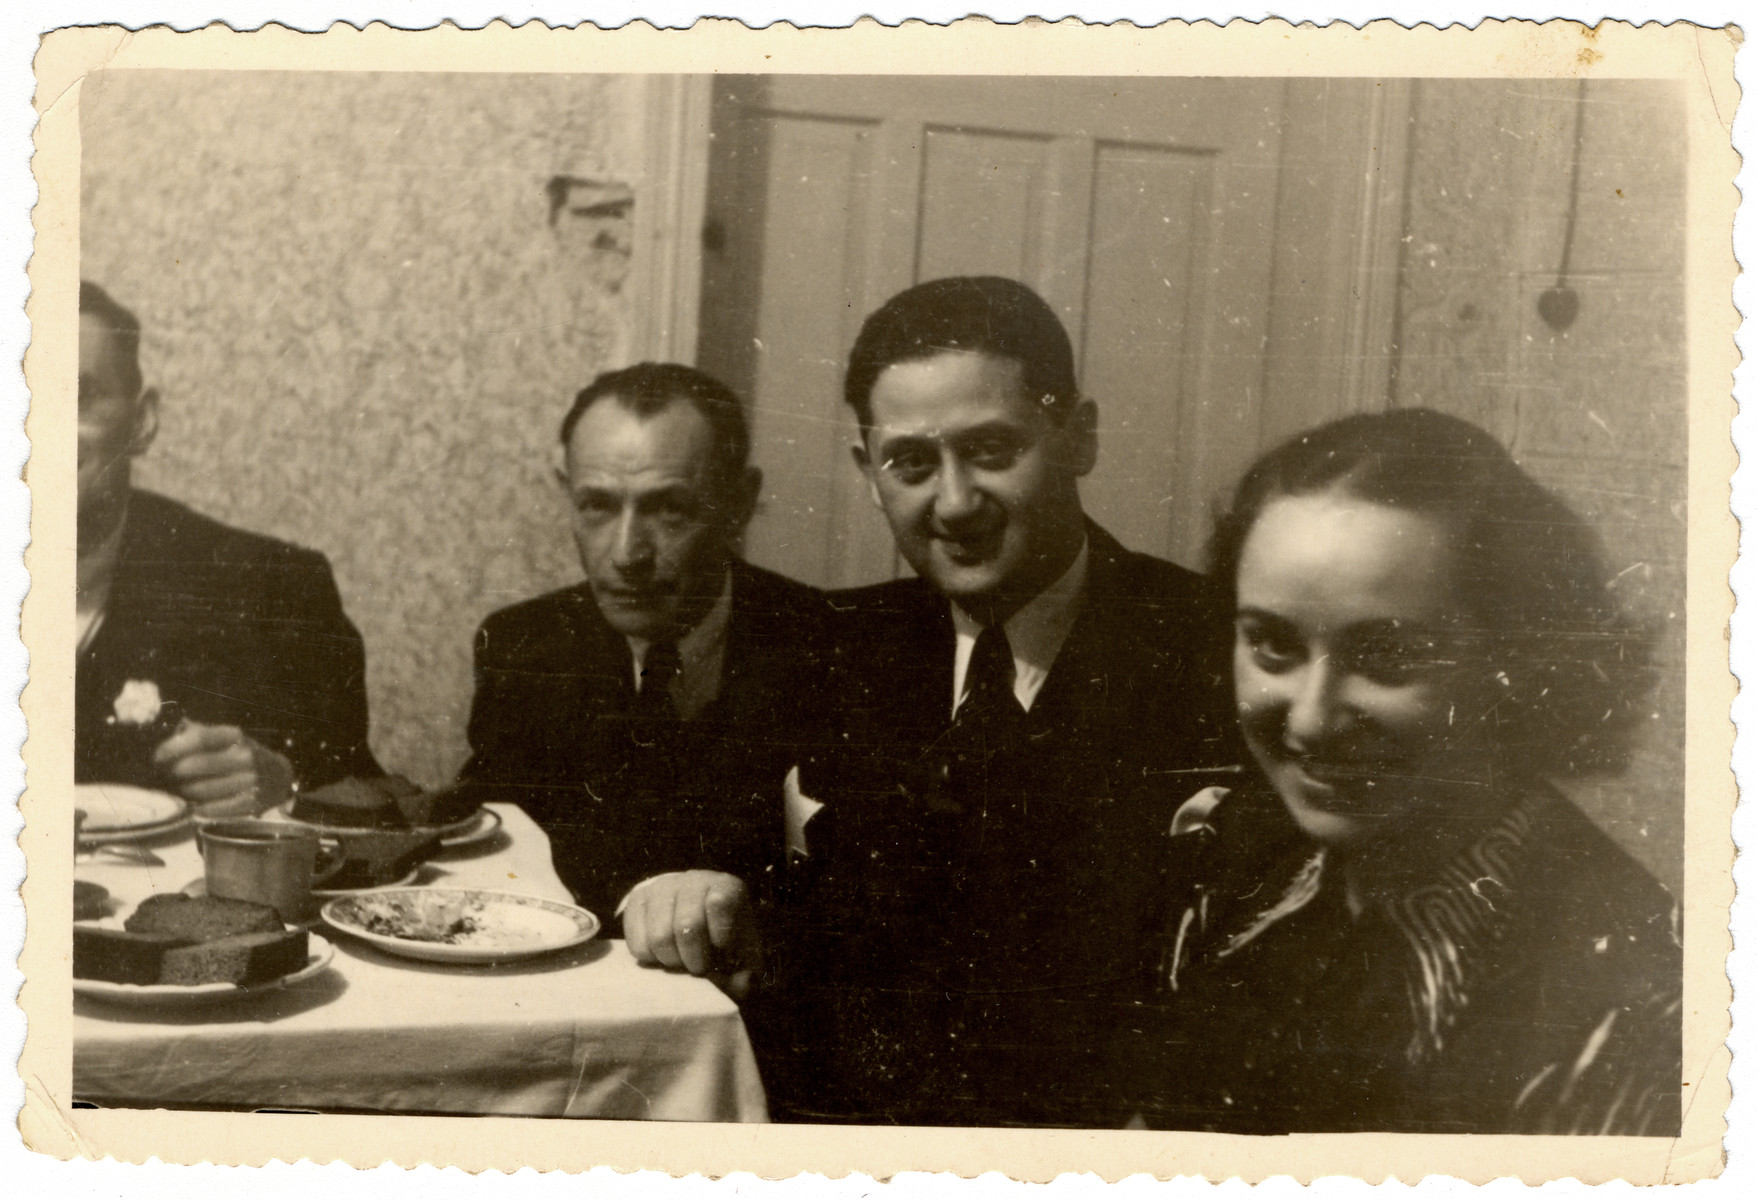 Lodz ghetto officials gather at a table for a meal.    Pictured from the left are Naftali [?], Aron Jakubowicz and Dora Fuks.